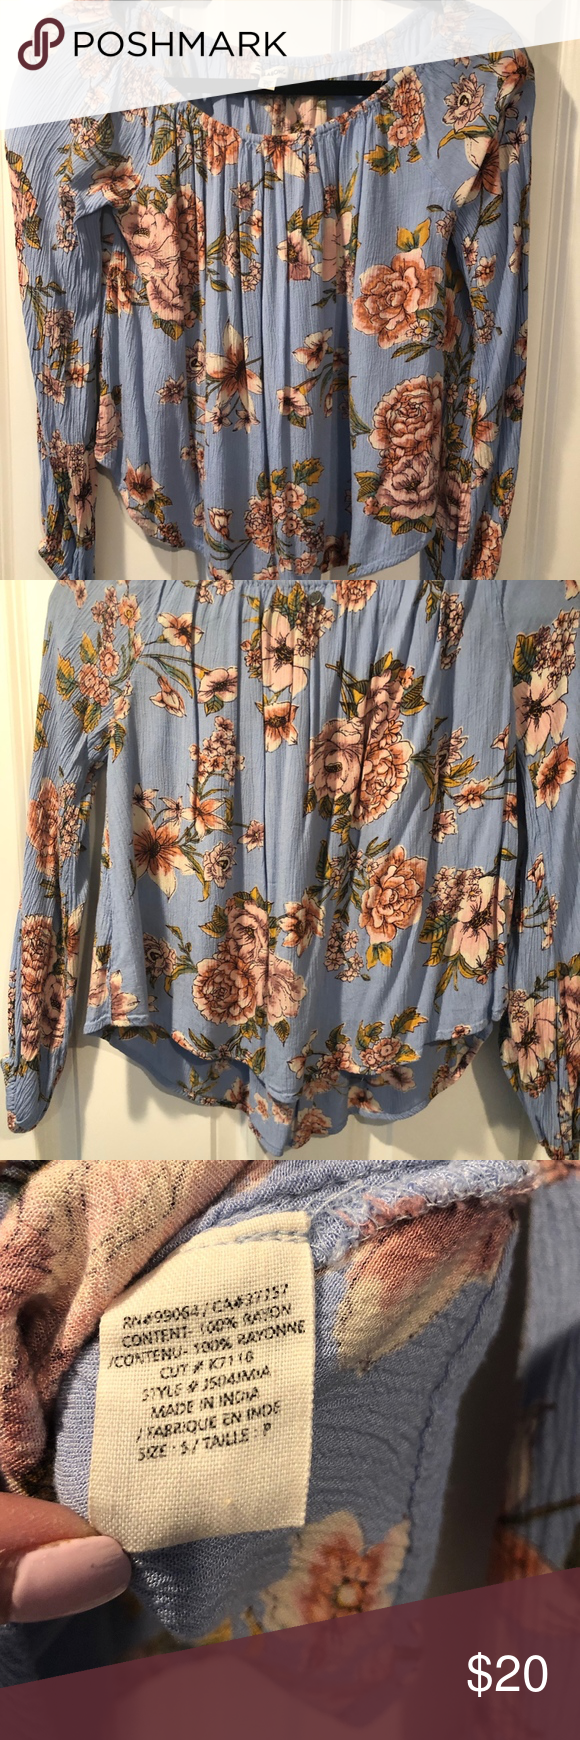 Billabong Mi Amore Floral Print Off-The-Shoulder Heart-melting winter blooms, made for the ever-shifting spirit. Taking bohemian vibes into the winter months, the Mi Amore features long sleeves that can be worn on or off the shoulder and a relaxed, draped fit.  Floral print off the shoulder top. Can be worn on or off the shoulder. Long sleeves. Elastic at neck and sleeve openings. Relaxed, flowy fit. Pattern: floral print. Material: woven rayon. Billabong Tops Tees - Long Sleeve